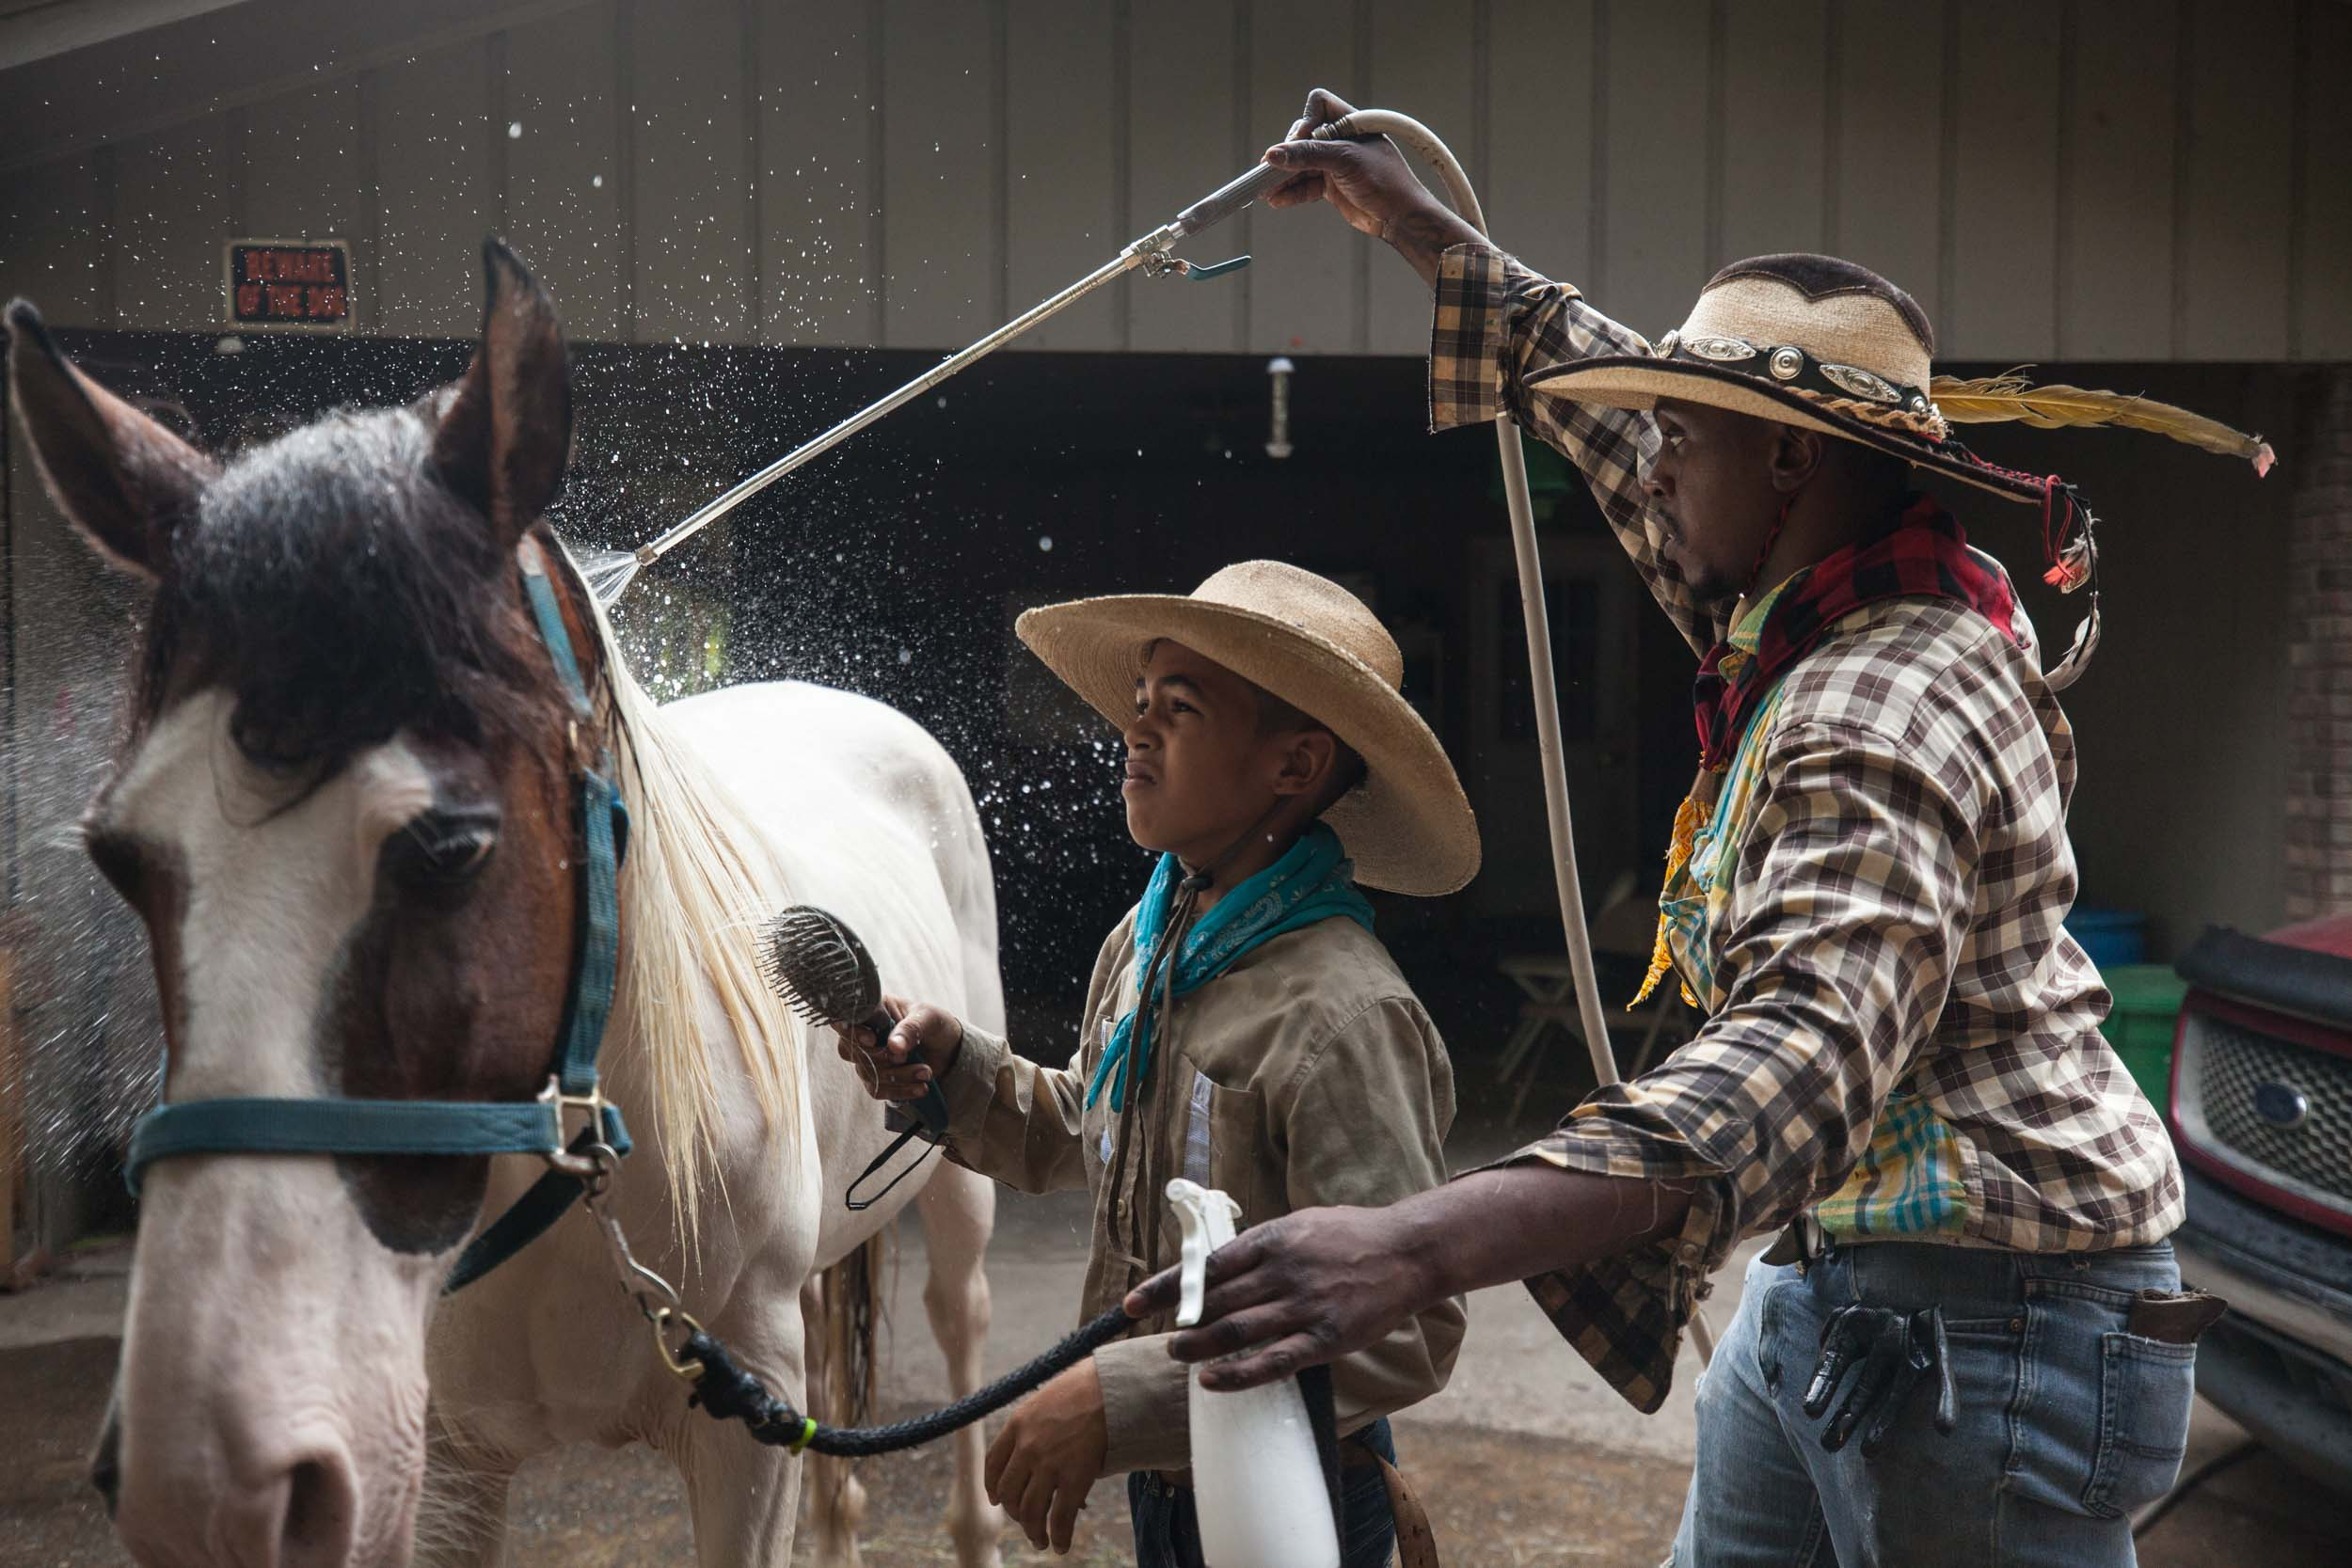 Arkansas Dave and his son Logan Dansby, 12, clean a horse on a ranch off of Flat Shoals Parkway, Tuesday, July 30, 2019, in Union City. Branden Camp for AJC